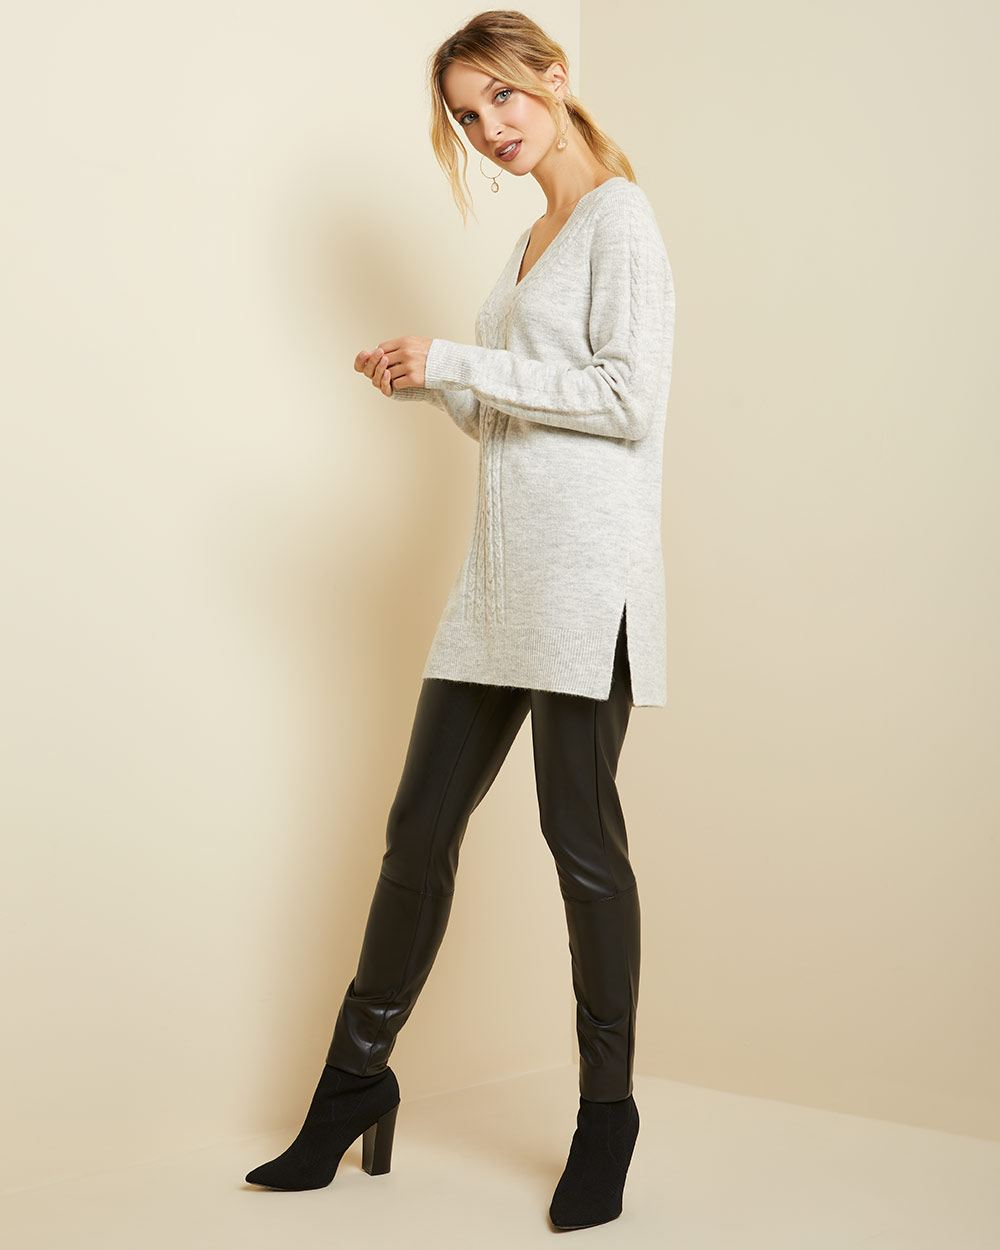 Spongy knit V-neck cable tunic sweater